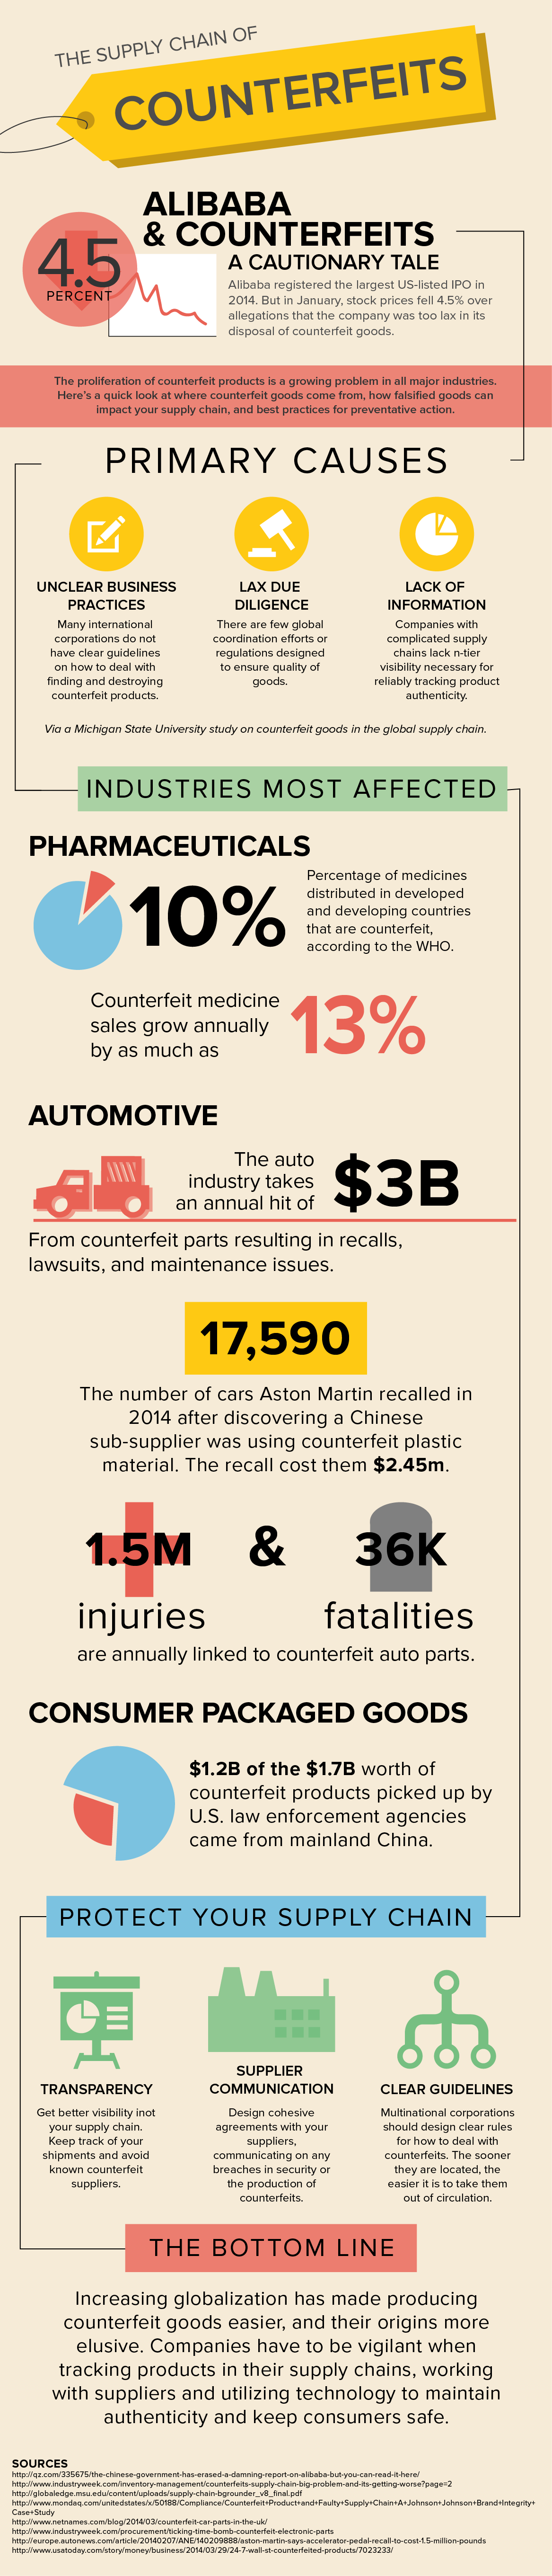 Counterfeit_Infographic_Final-01-1